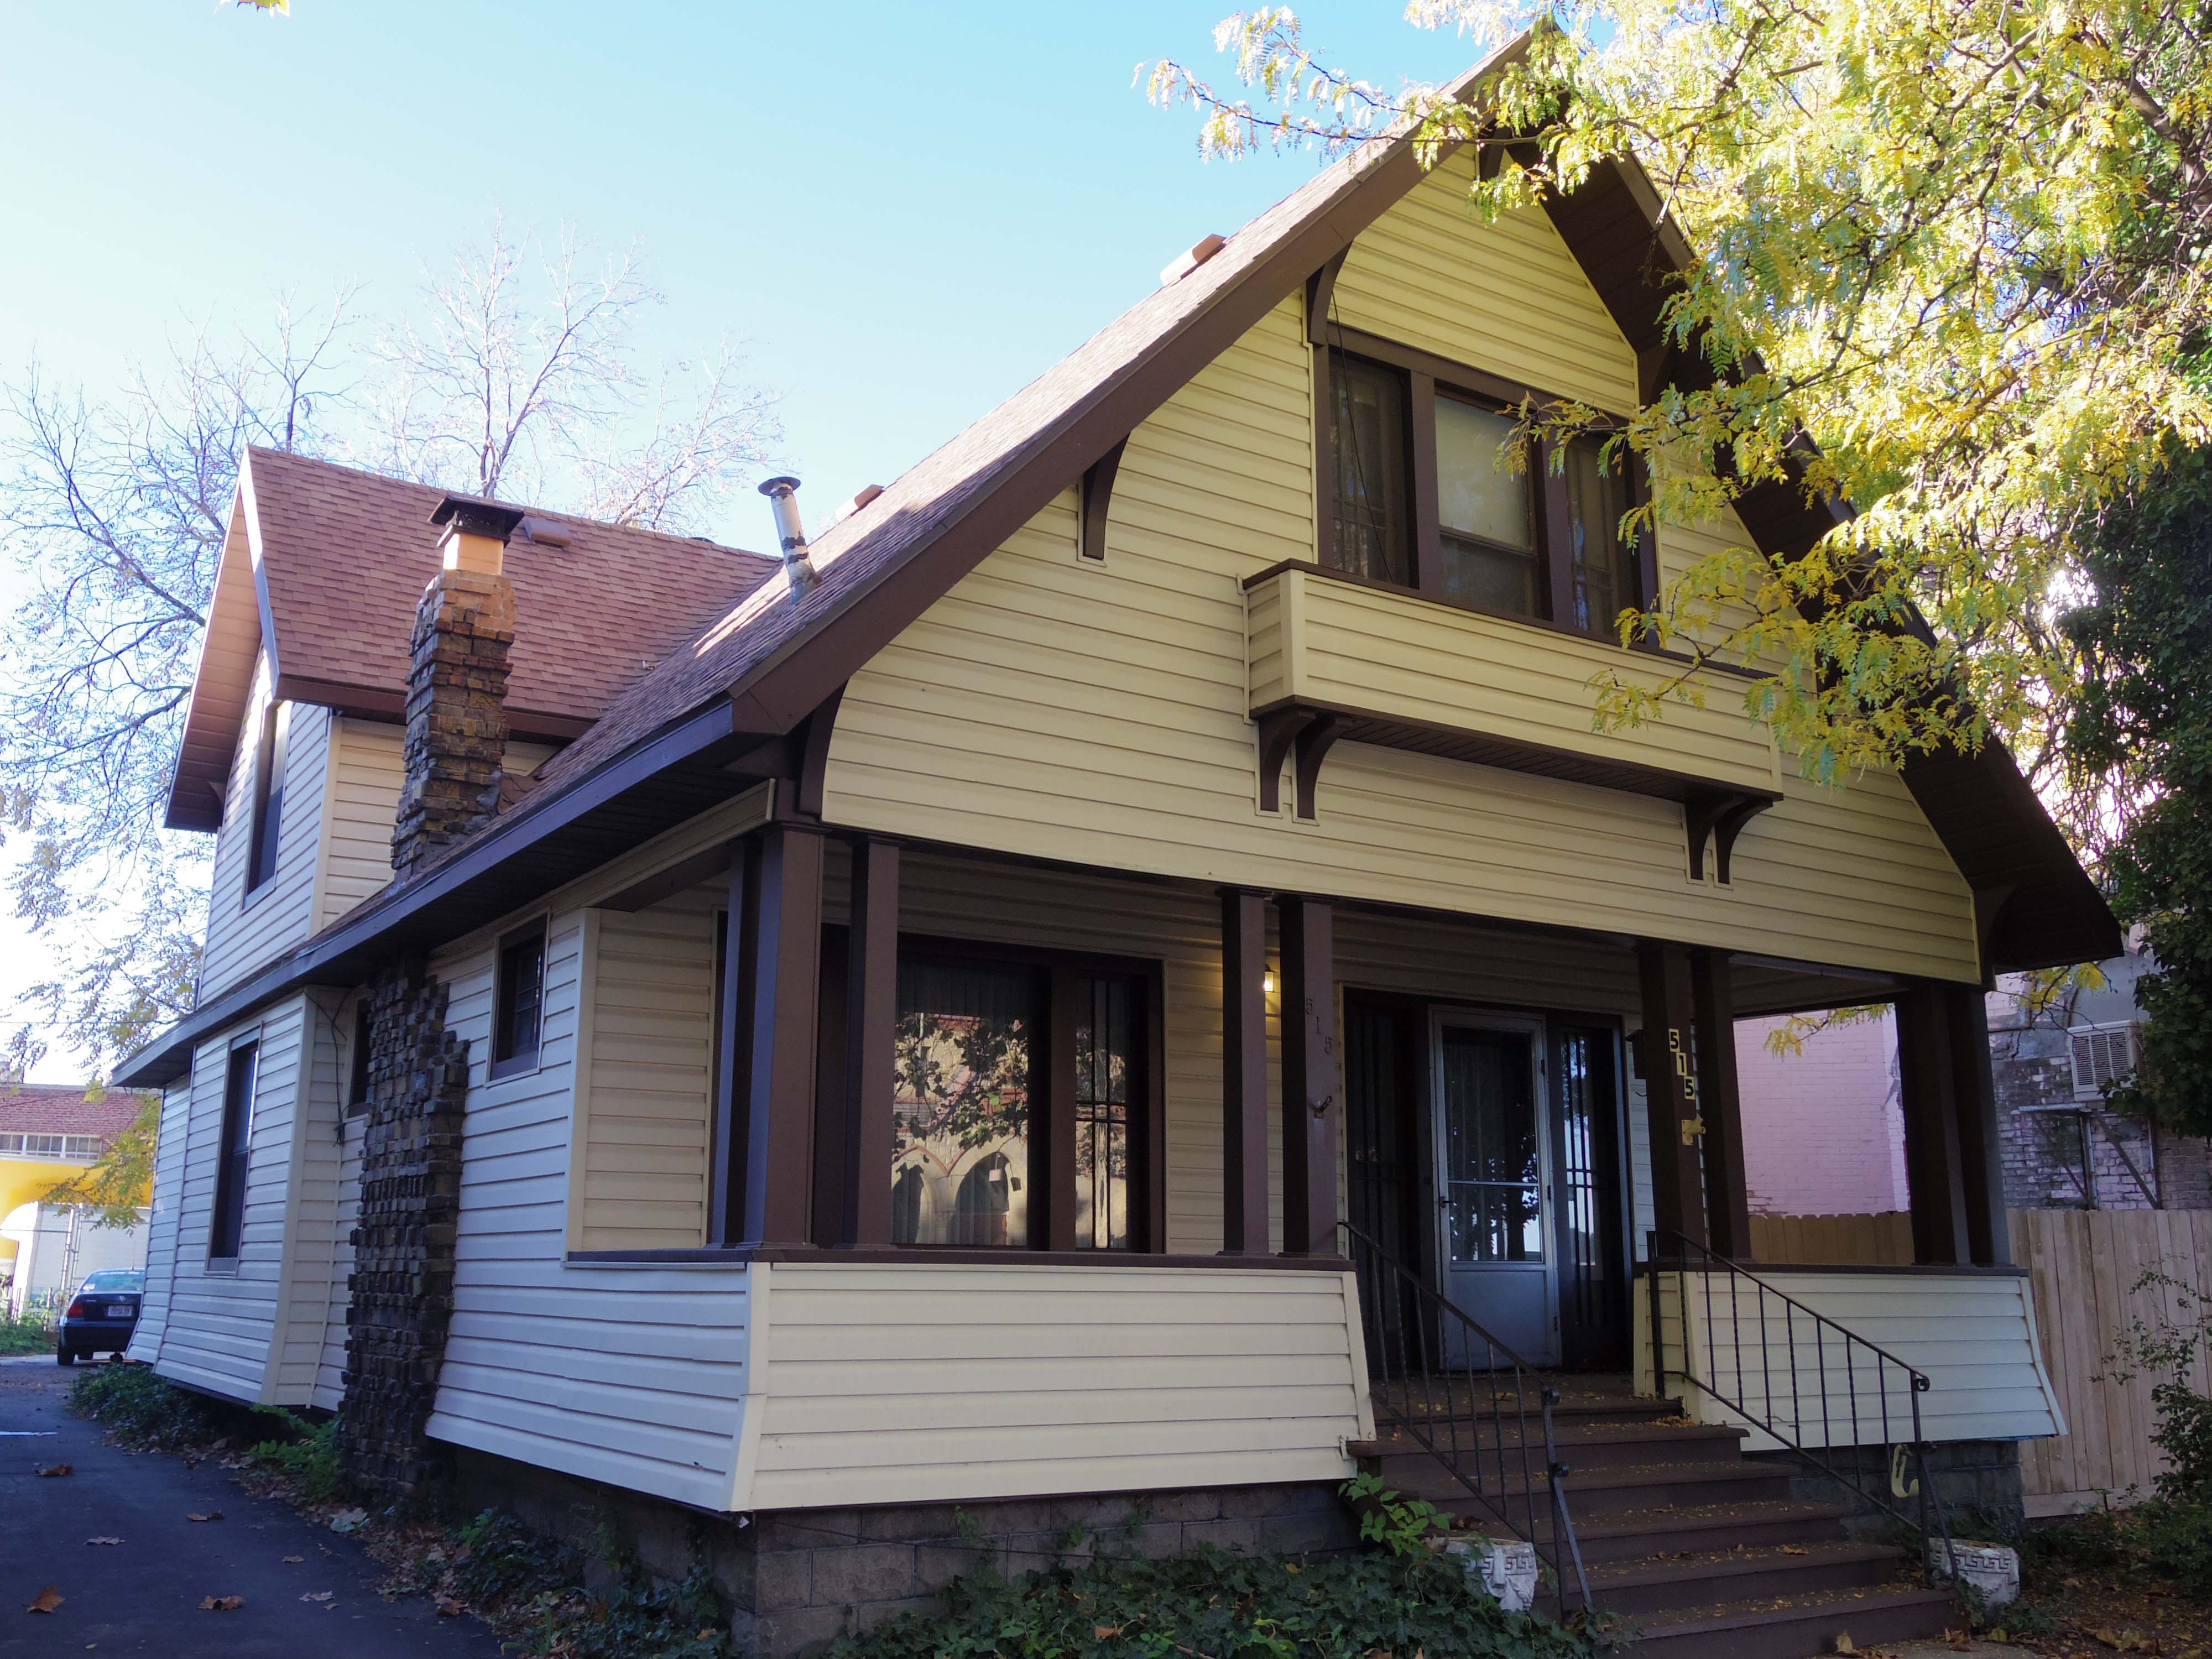 FOR SALE:  Historic Two-Story Craftsman Home